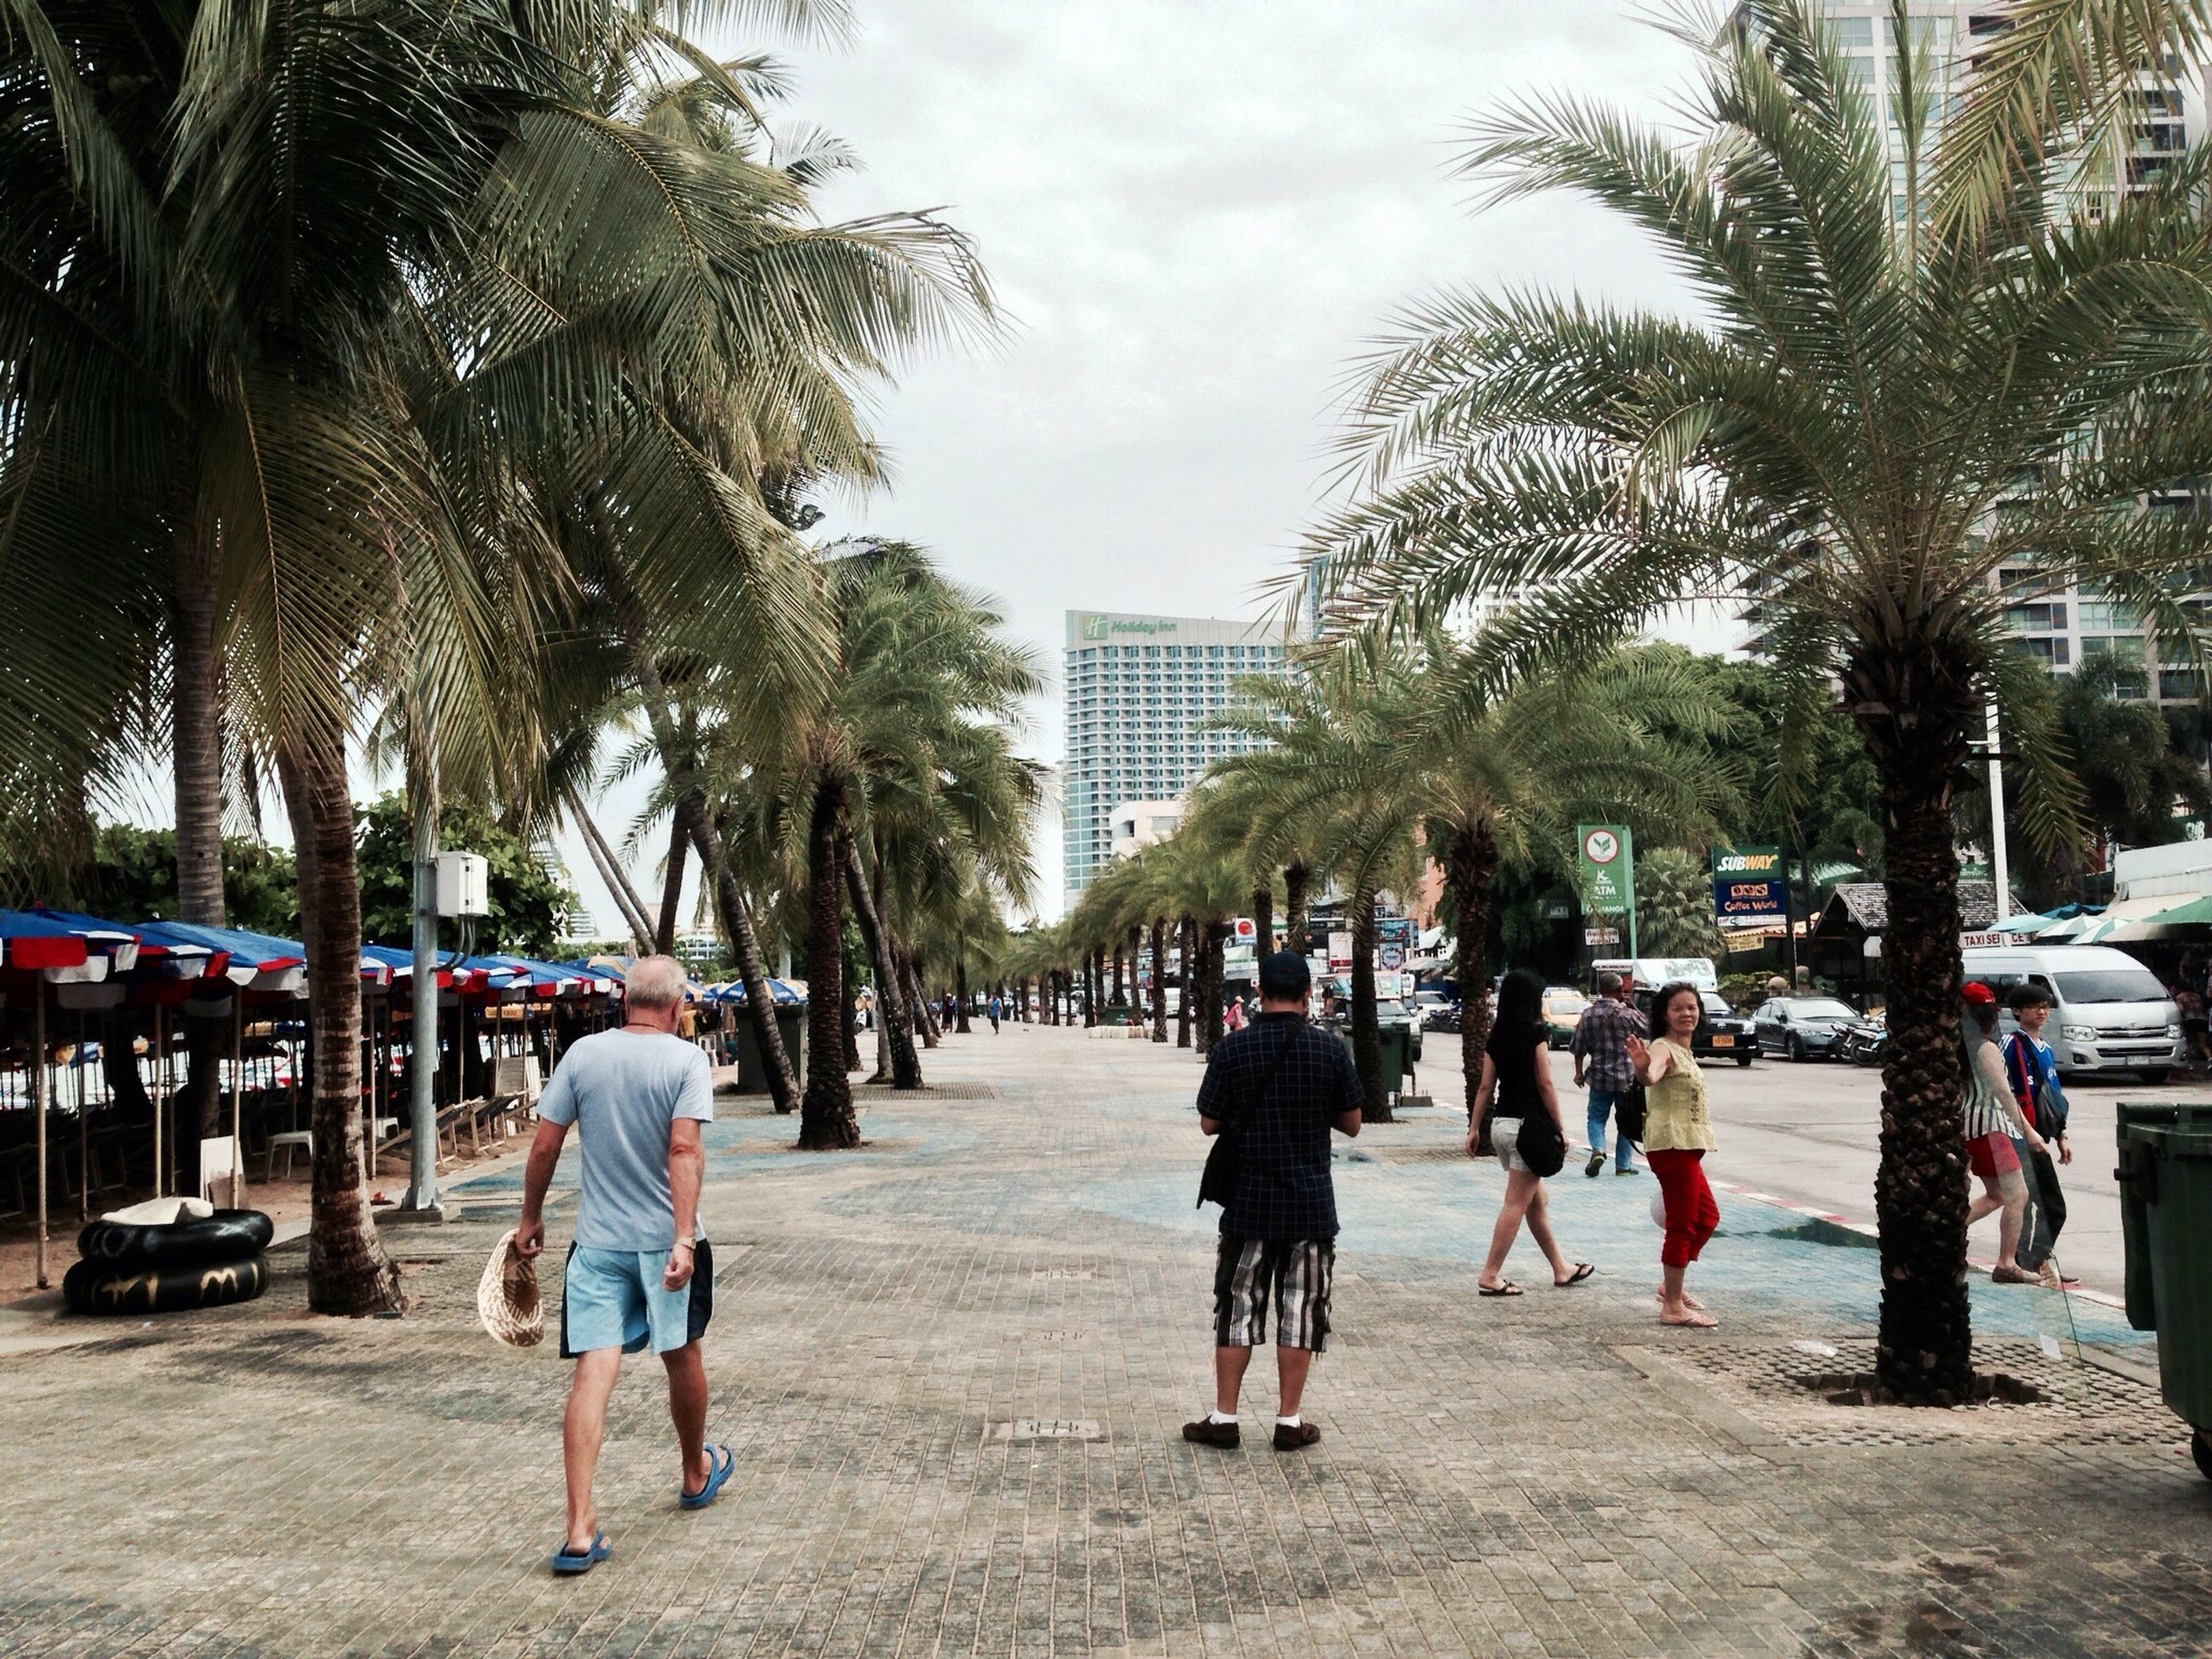 lifestyles, tree, person, men, walking, building exterior, leisure activity, large group of people, city, architecture, built structure, street, full length, city life, sky, togetherness, rear view, casual clothing, mixed age range